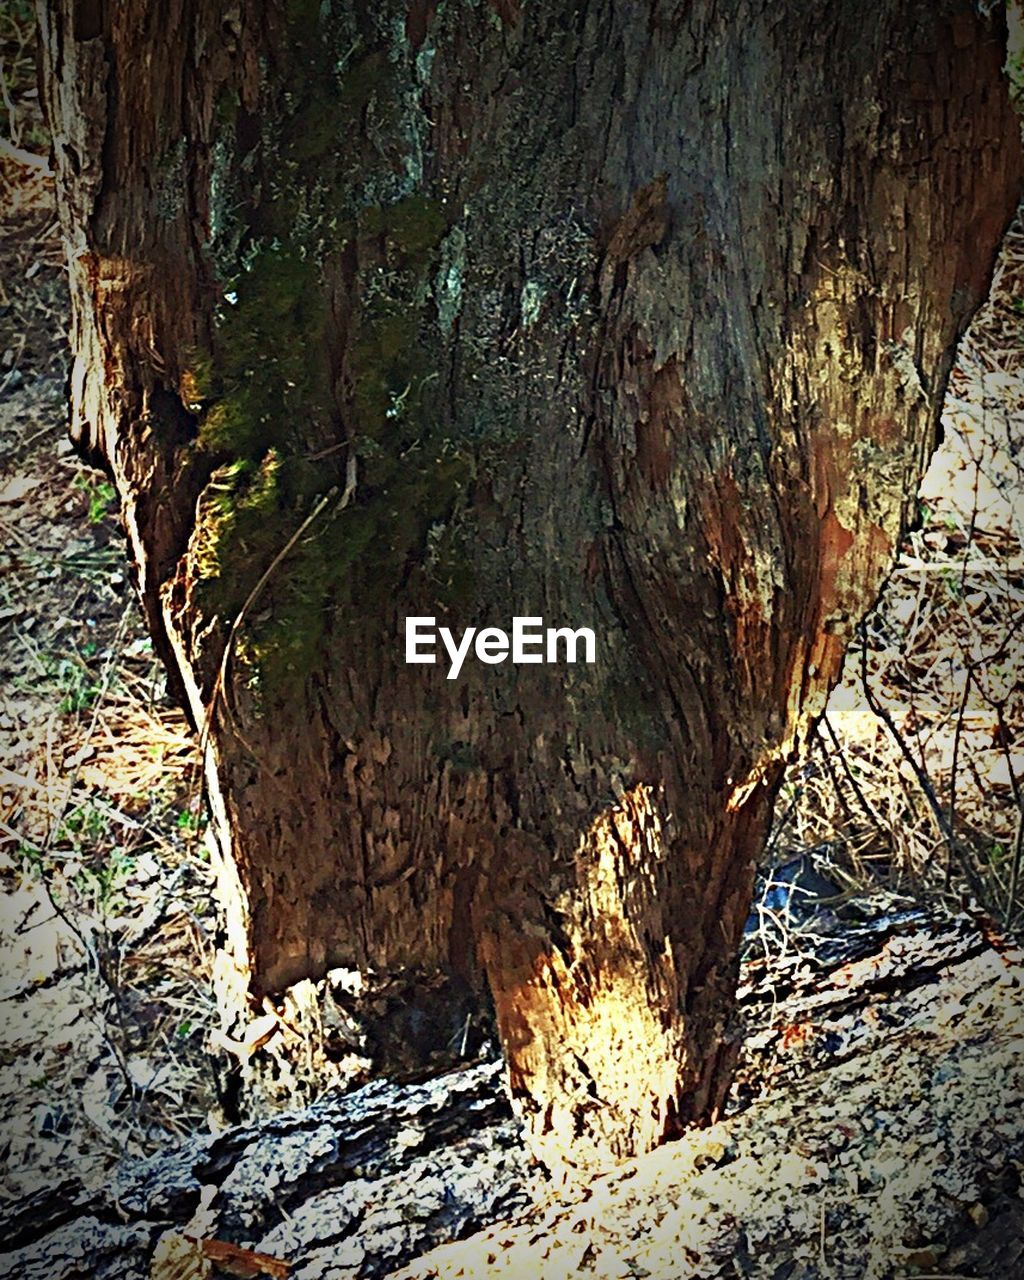 nature, tree, tree trunk, rock - object, day, no people, beauty in nature, tranquility, textured, outdoors, forest, close-up